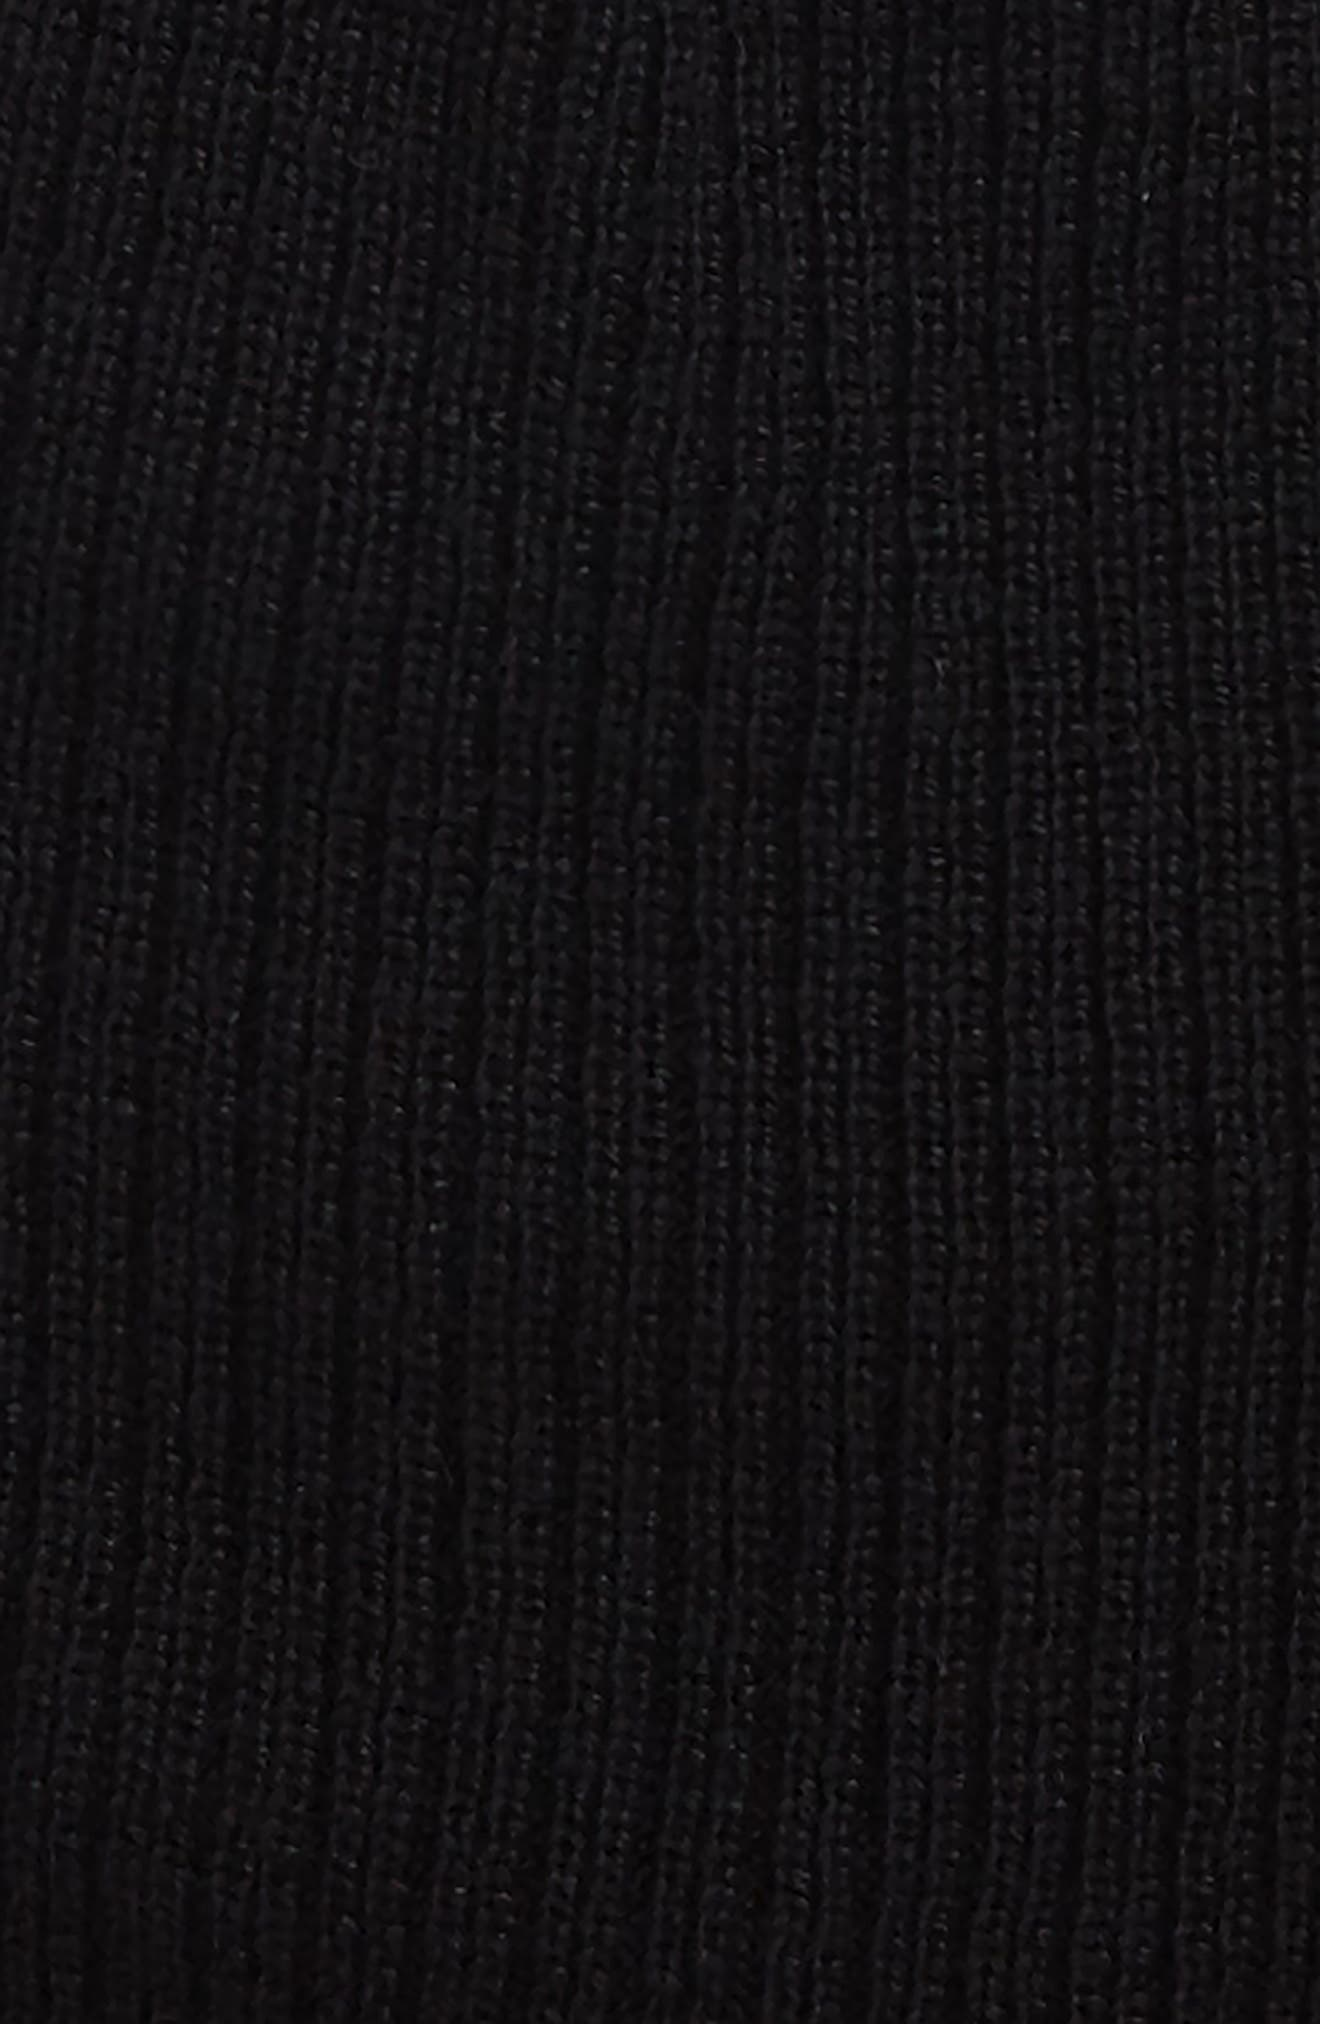 Reversible Tech Beanie,                             Alternate thumbnail 2, color,                             Black/ Iron Grey